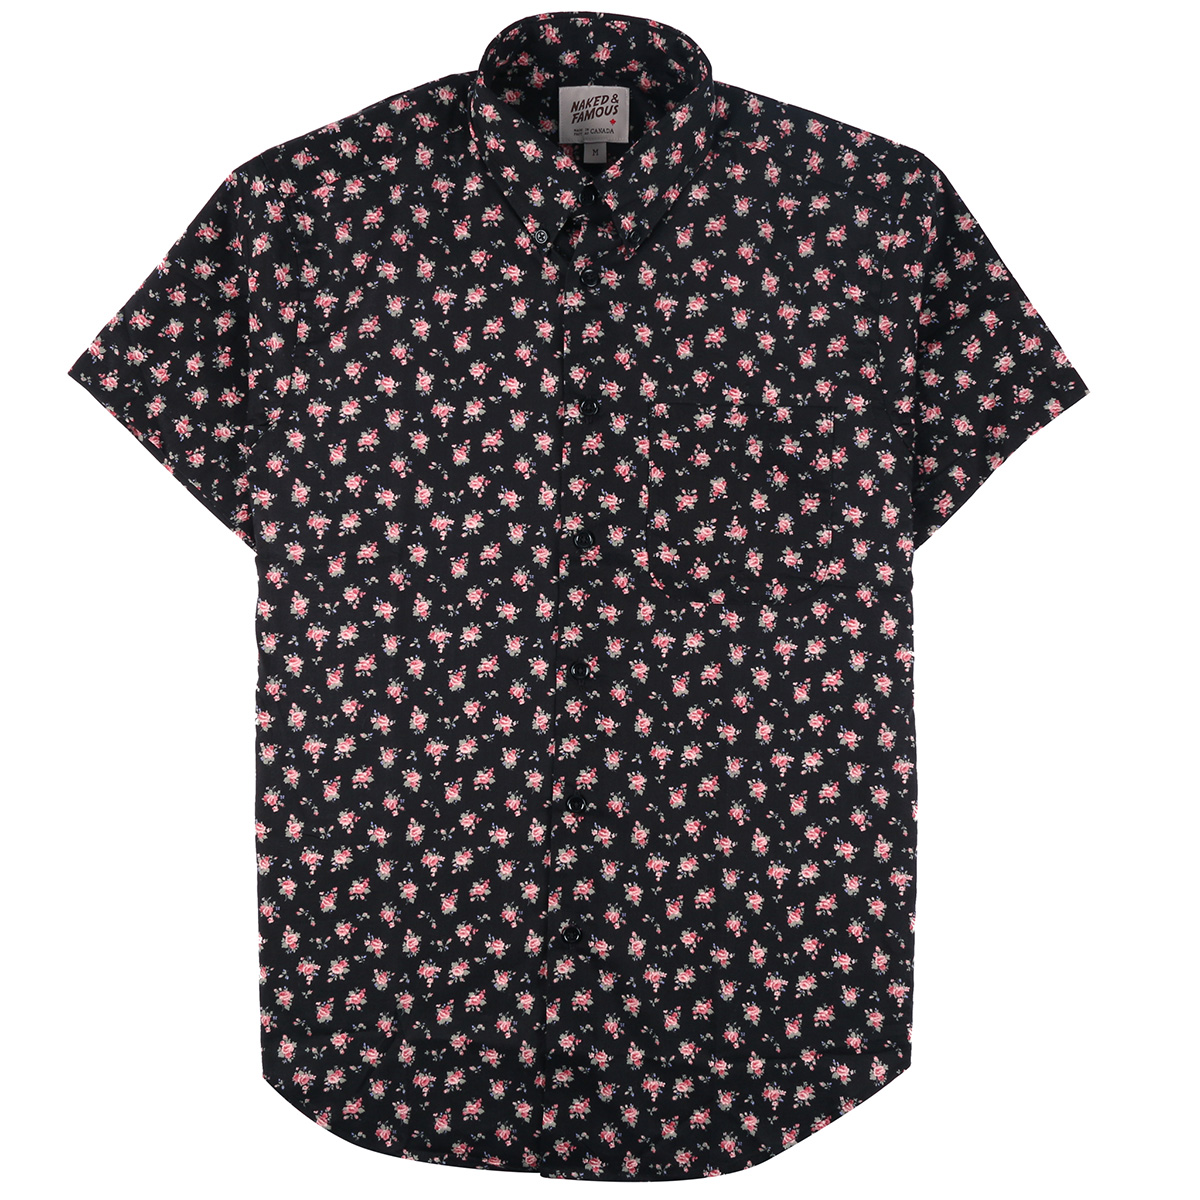 FLOWER PRINT - BLACK - Short Sleeve Easy Shirt